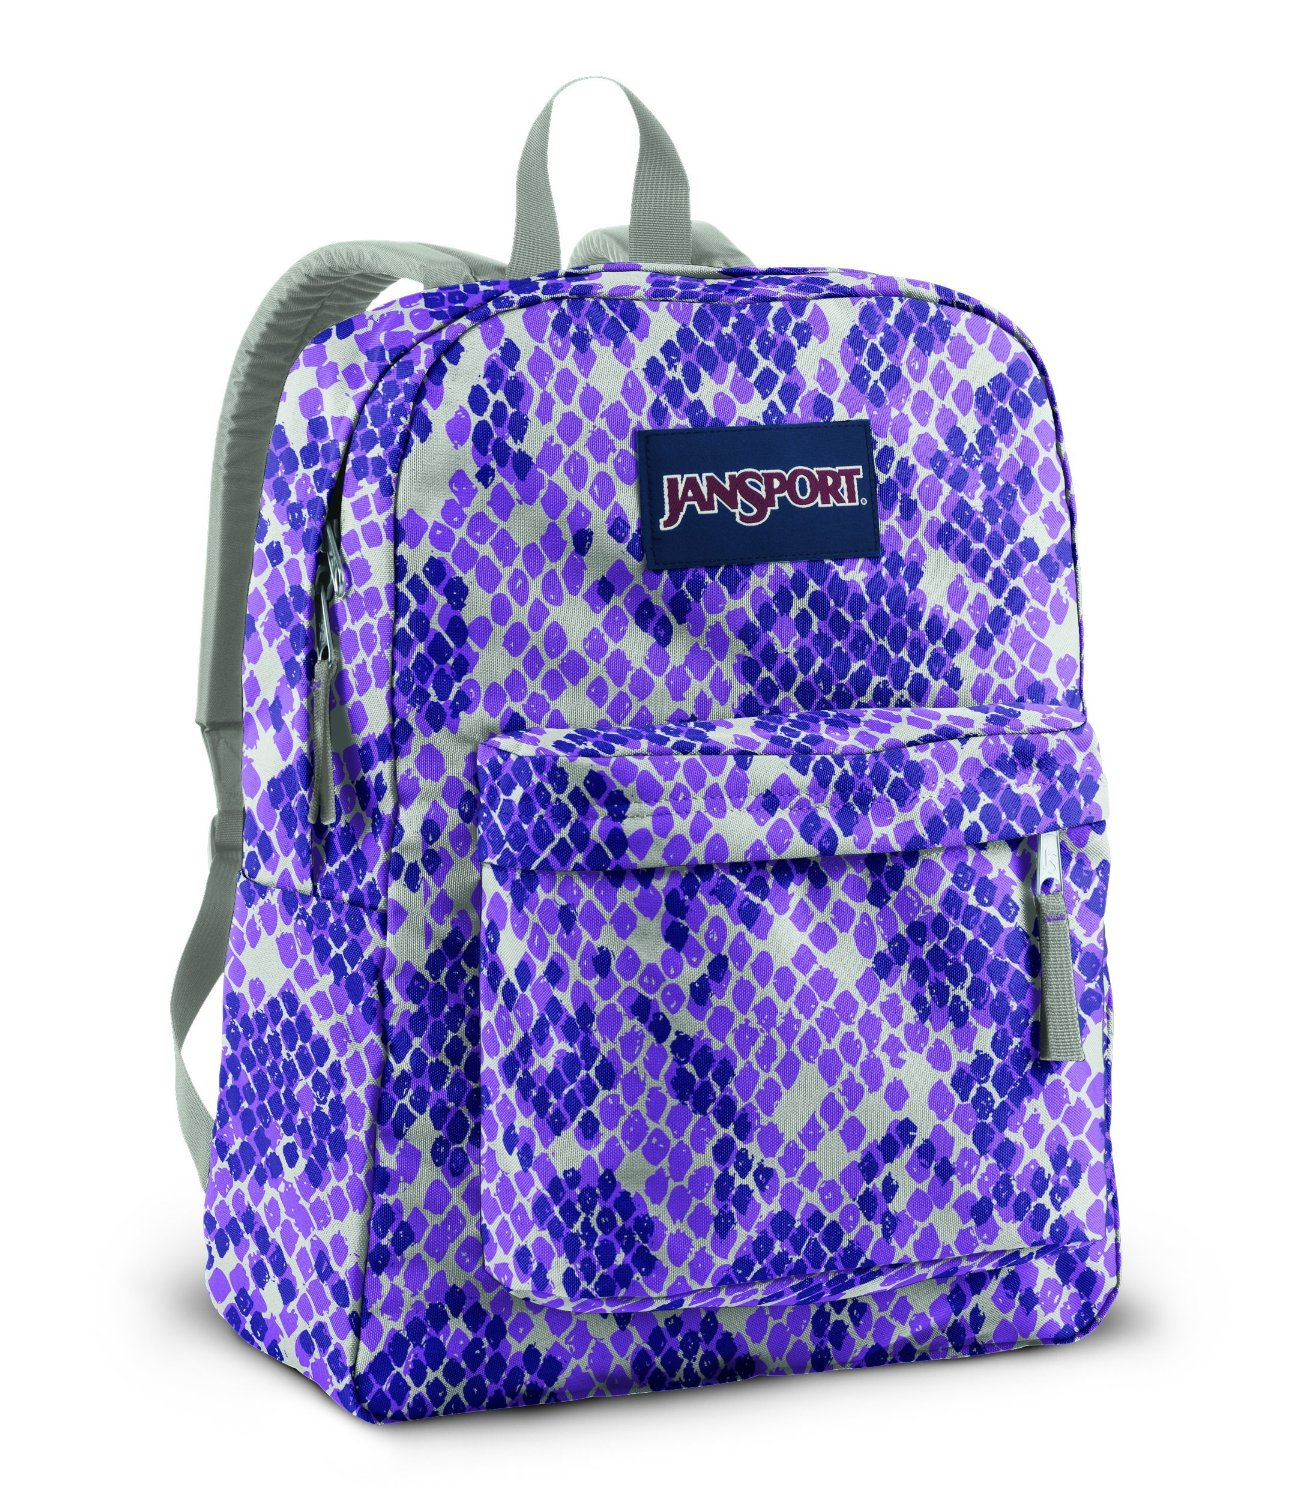 Jansport Backpacks For Girls kDfQkOGD